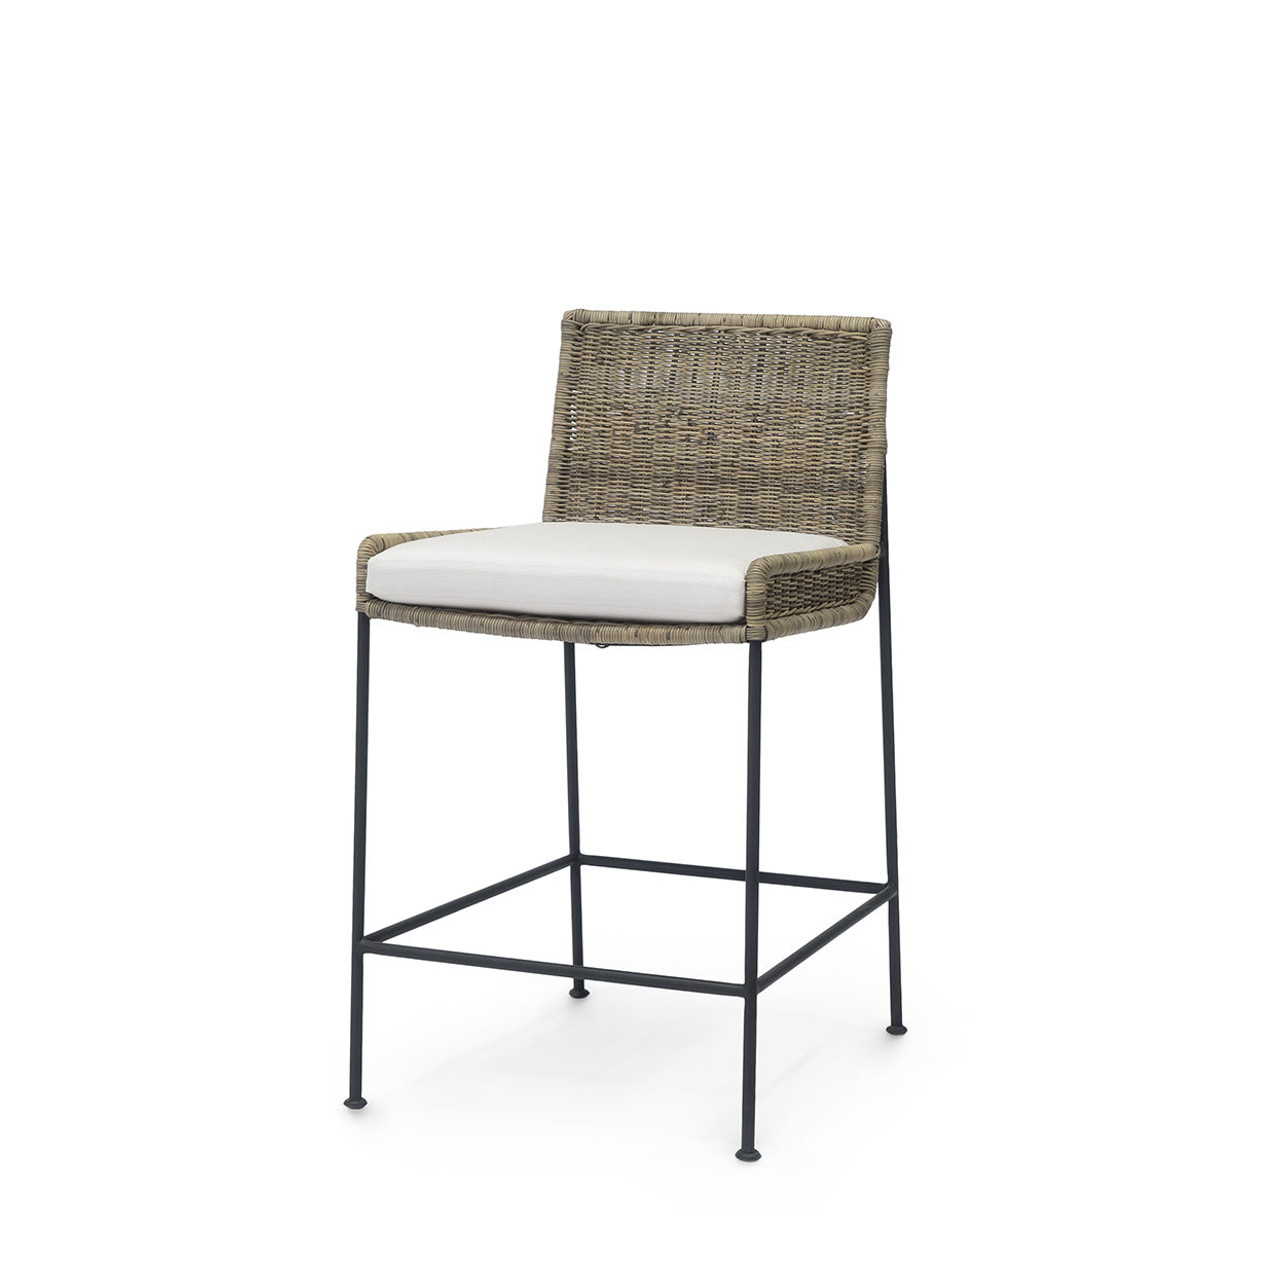 NORA BAR & COUNTER STOOL